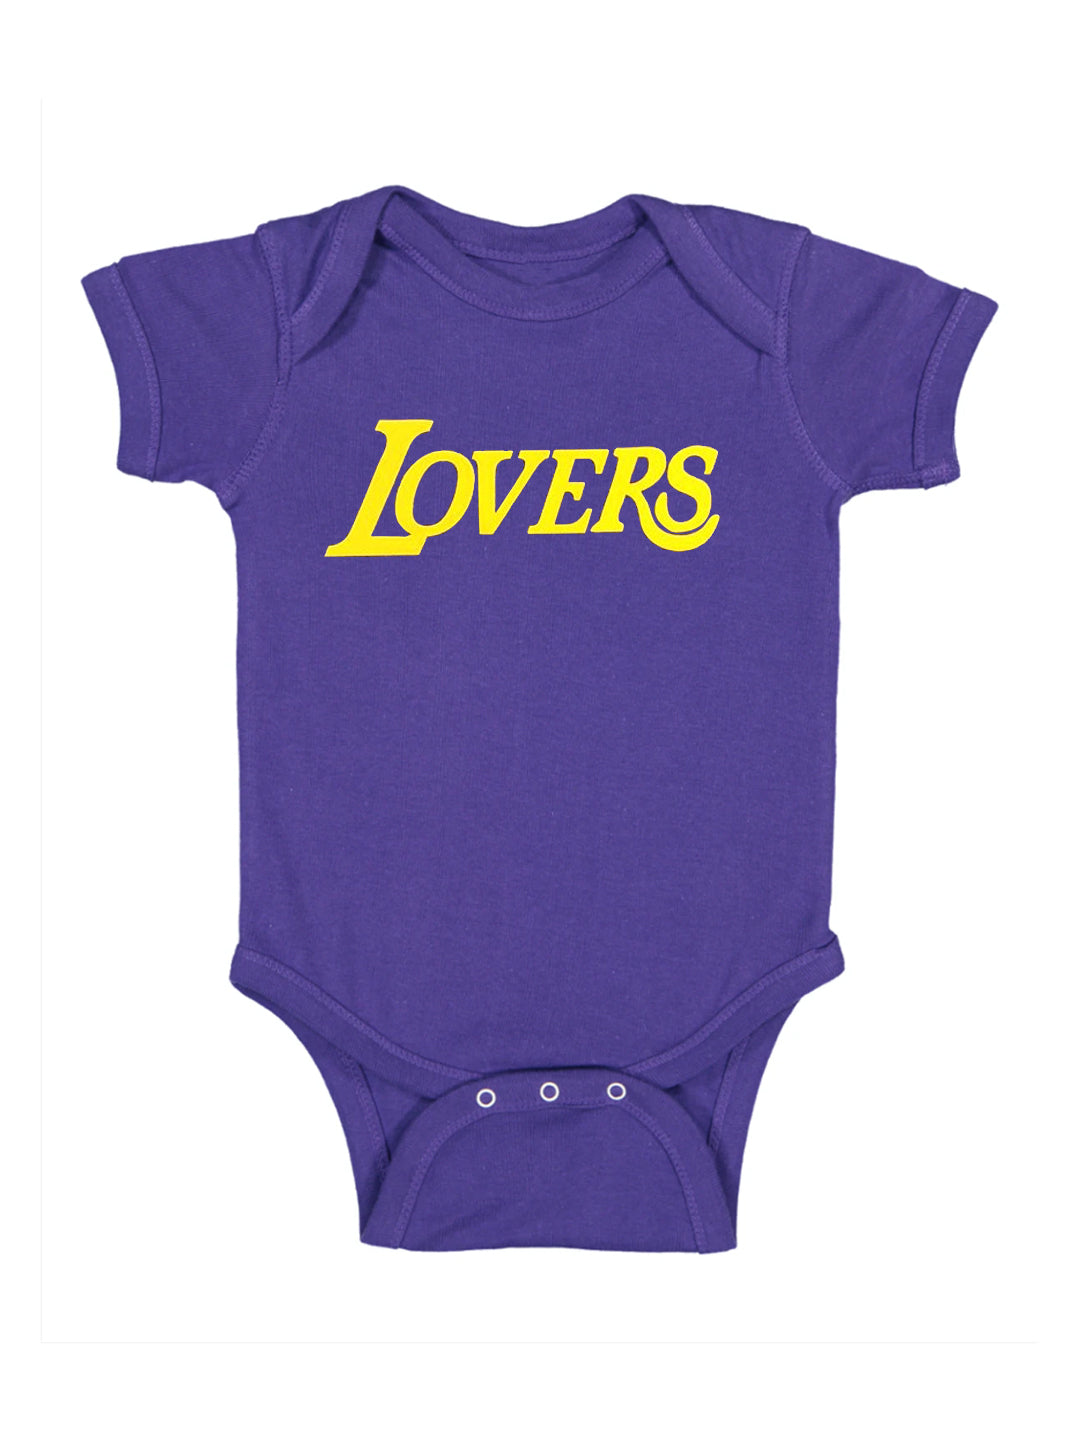 Lovers Onesie